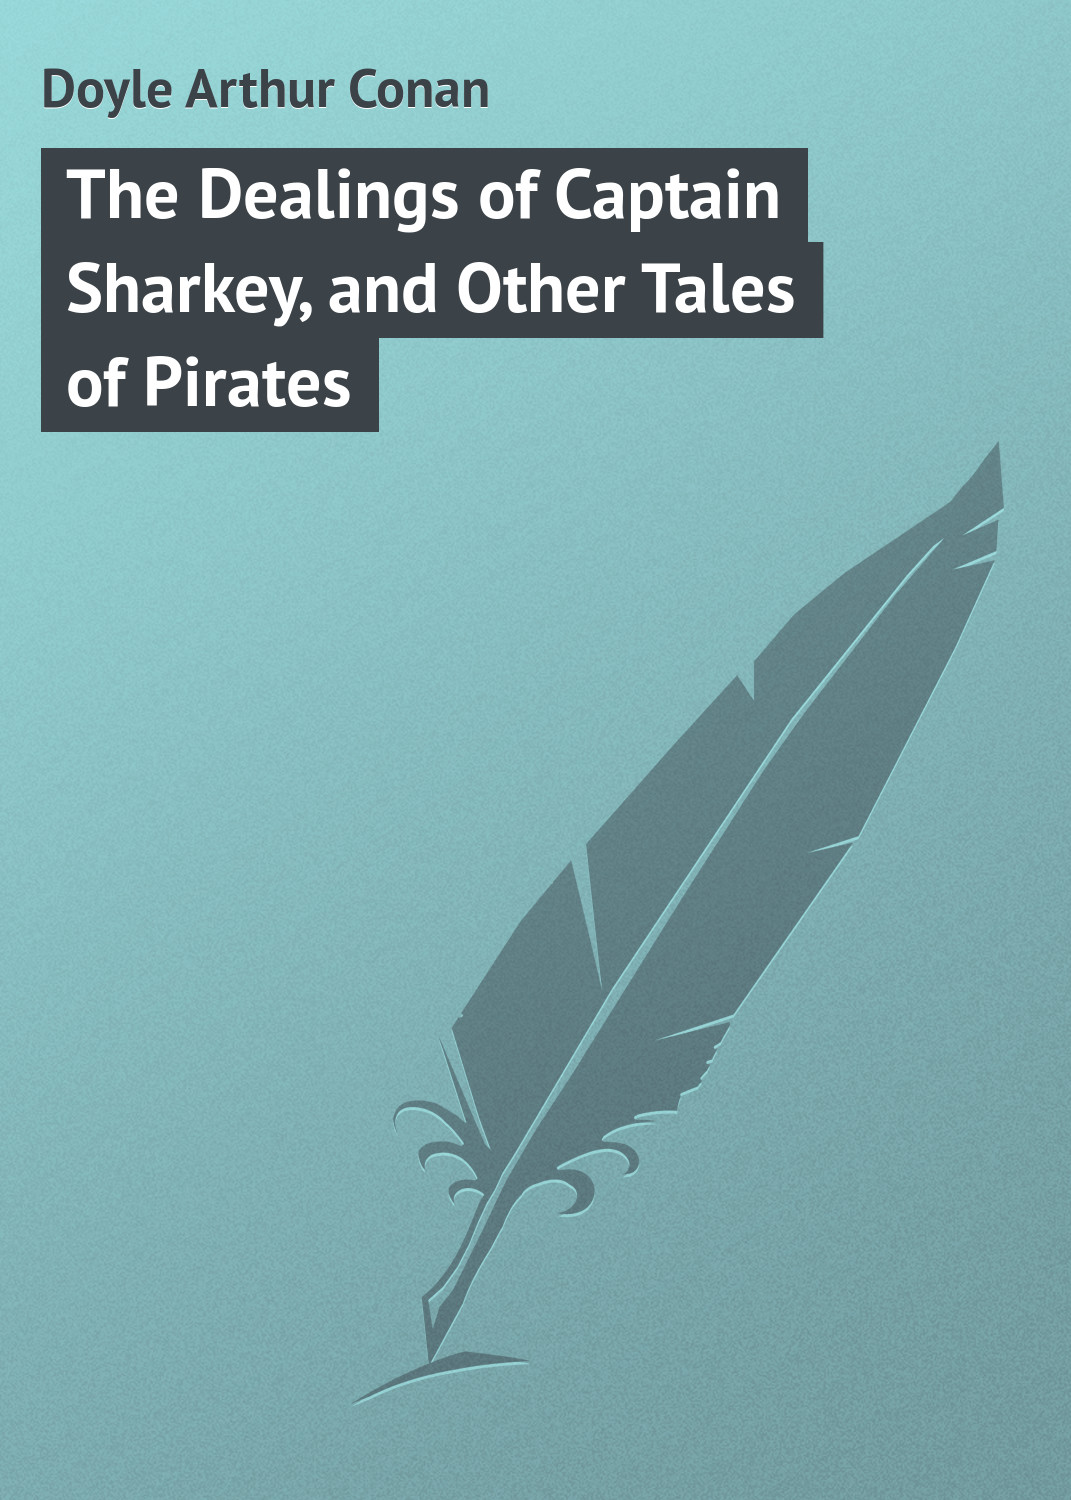 Doyle Arthur Conan The Dealings of Captain Sharkey, and Other Tales of Pirates arthur conan doyle tales of adventure